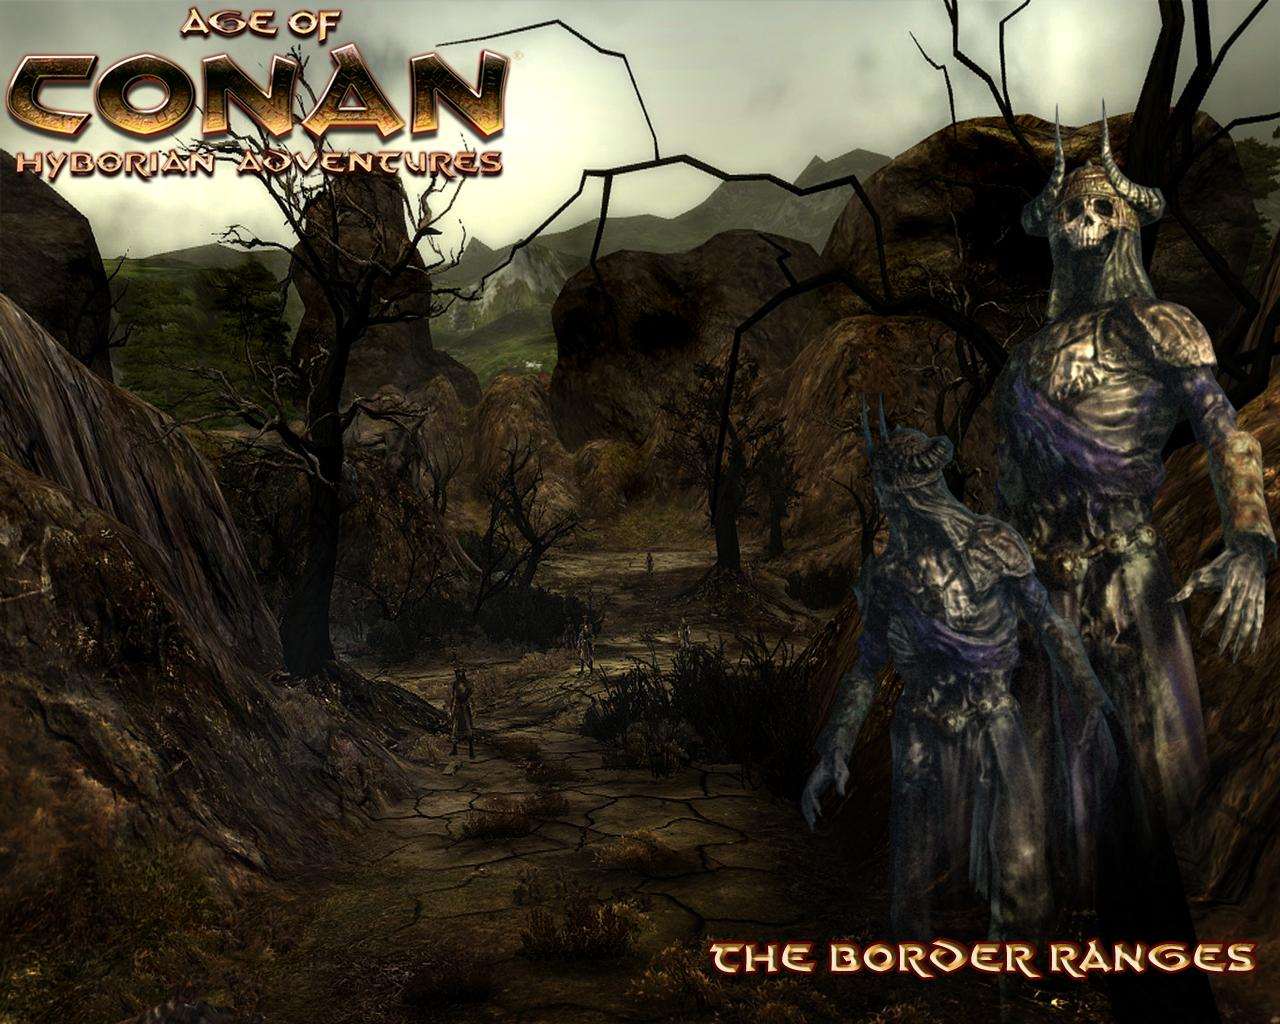 Age of Conan Hyborian Adventures Wallpapers   Games Wallpapers 2 1280x1024